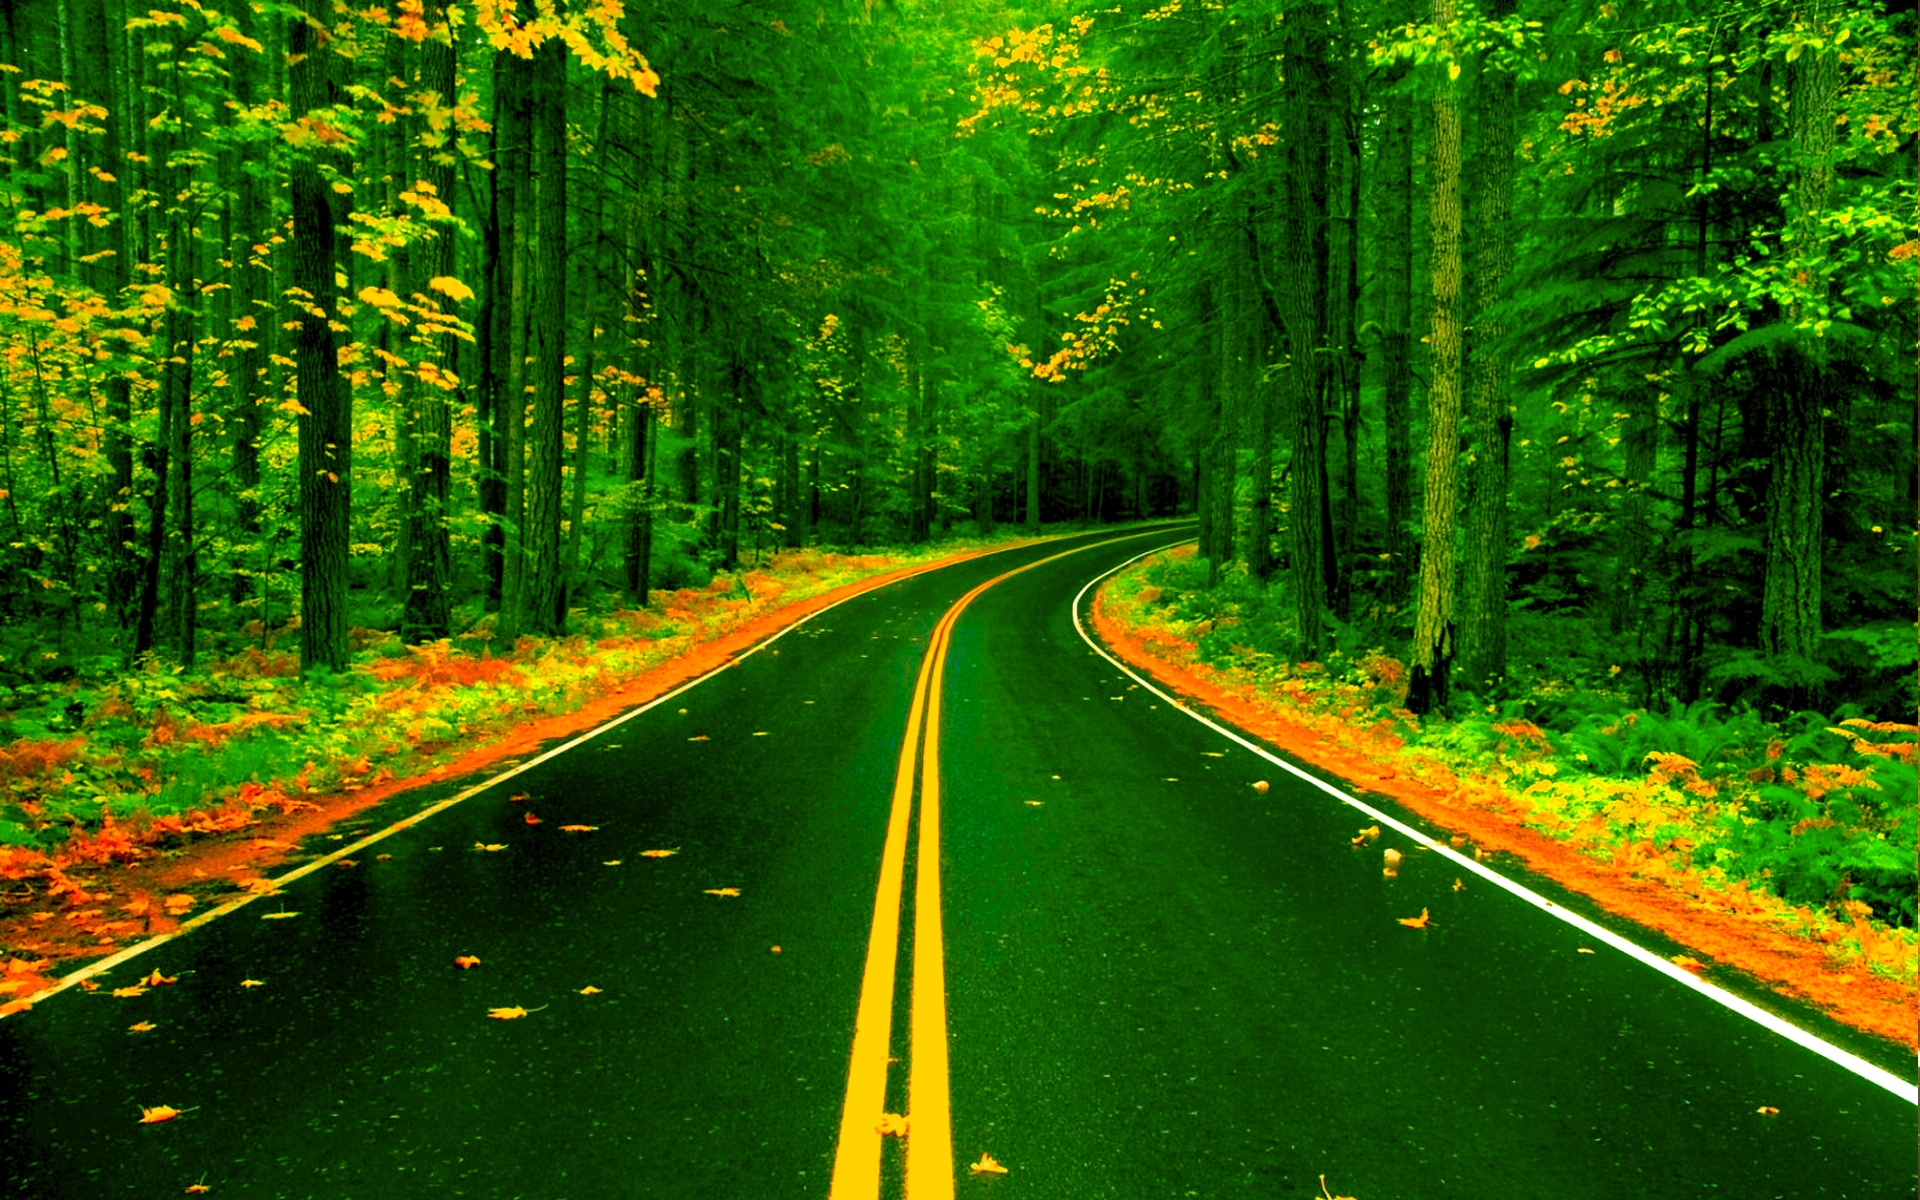 Forest Road Wallpaper Background Images Road Nature 348283 Hd Wallpaper Backgrounds Download